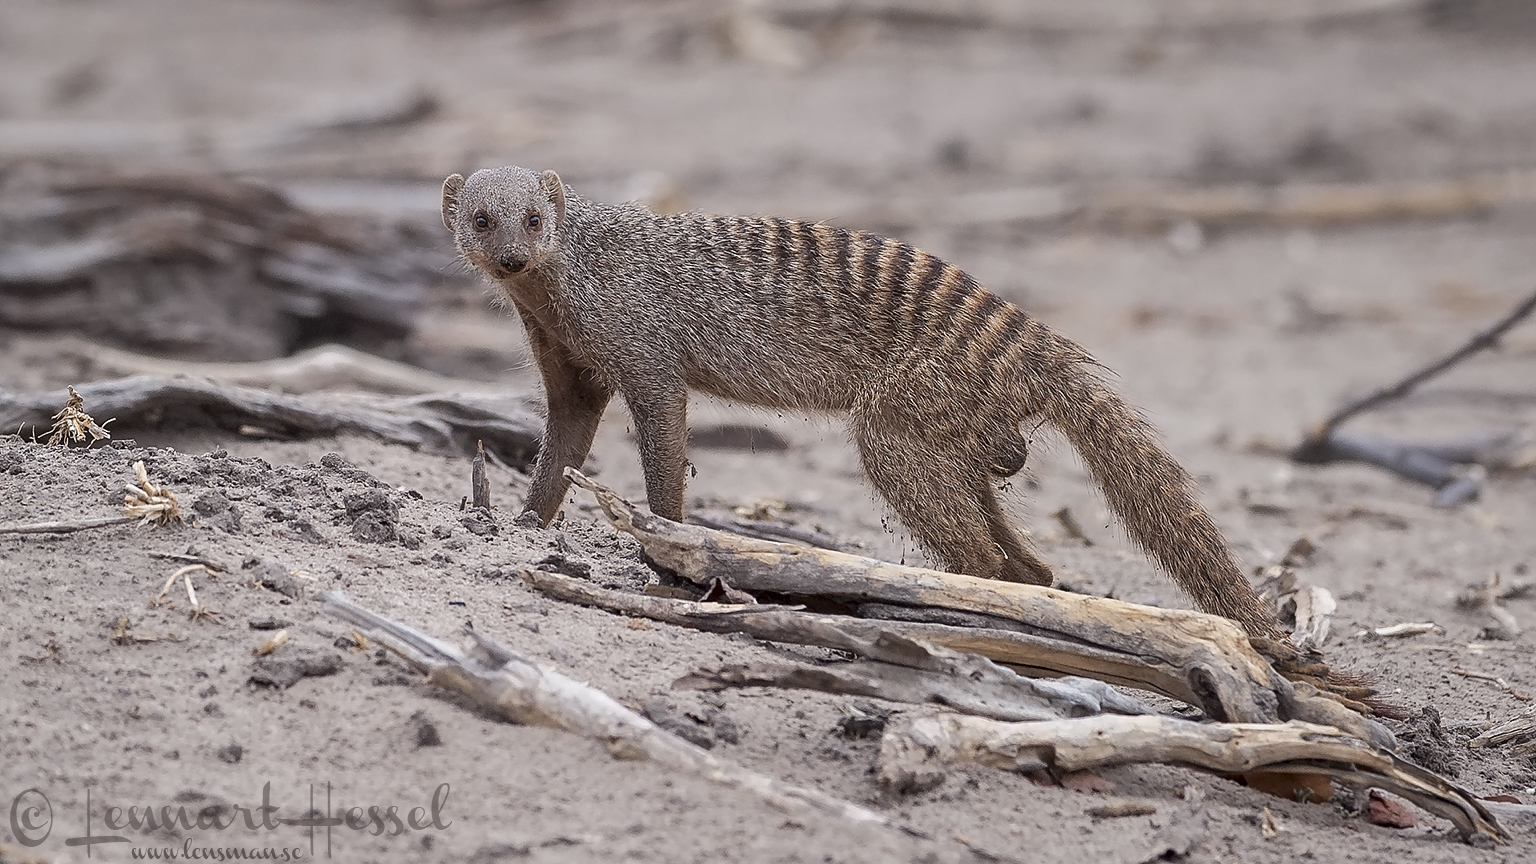 Banded Mongoose at Chobe River area, Botswana